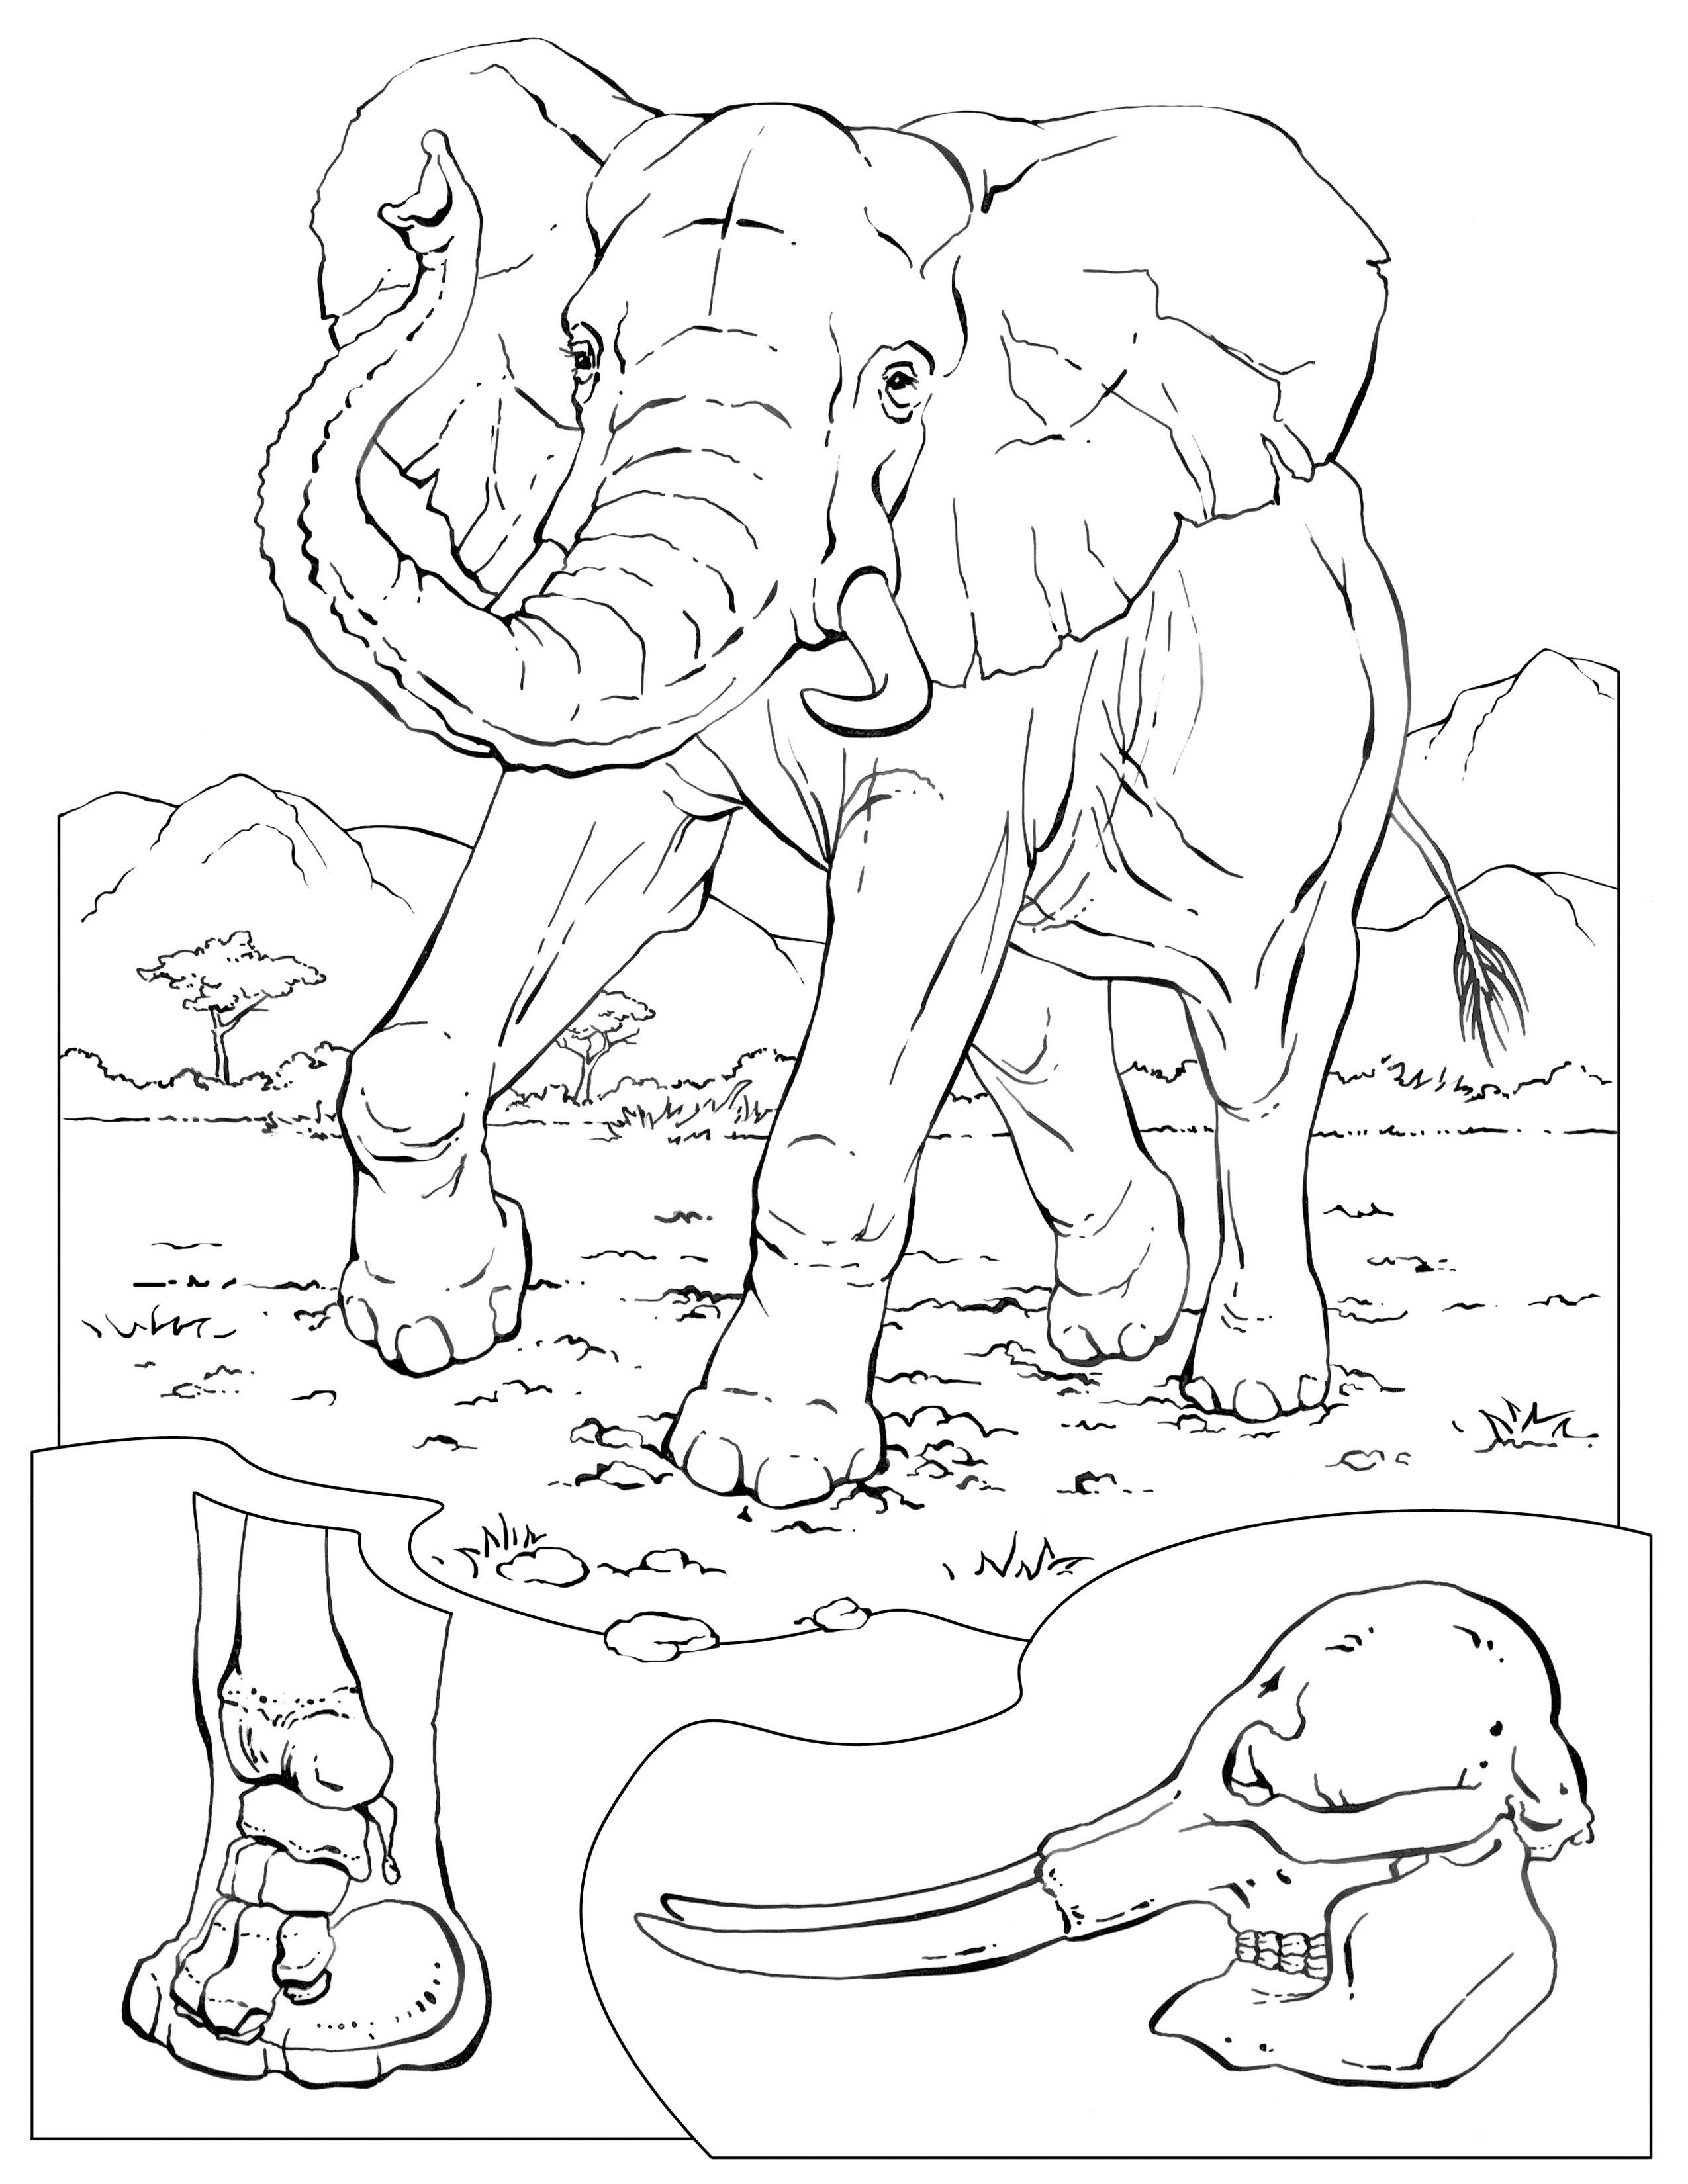 Coloring Pages - Wildlife Research & Conservation